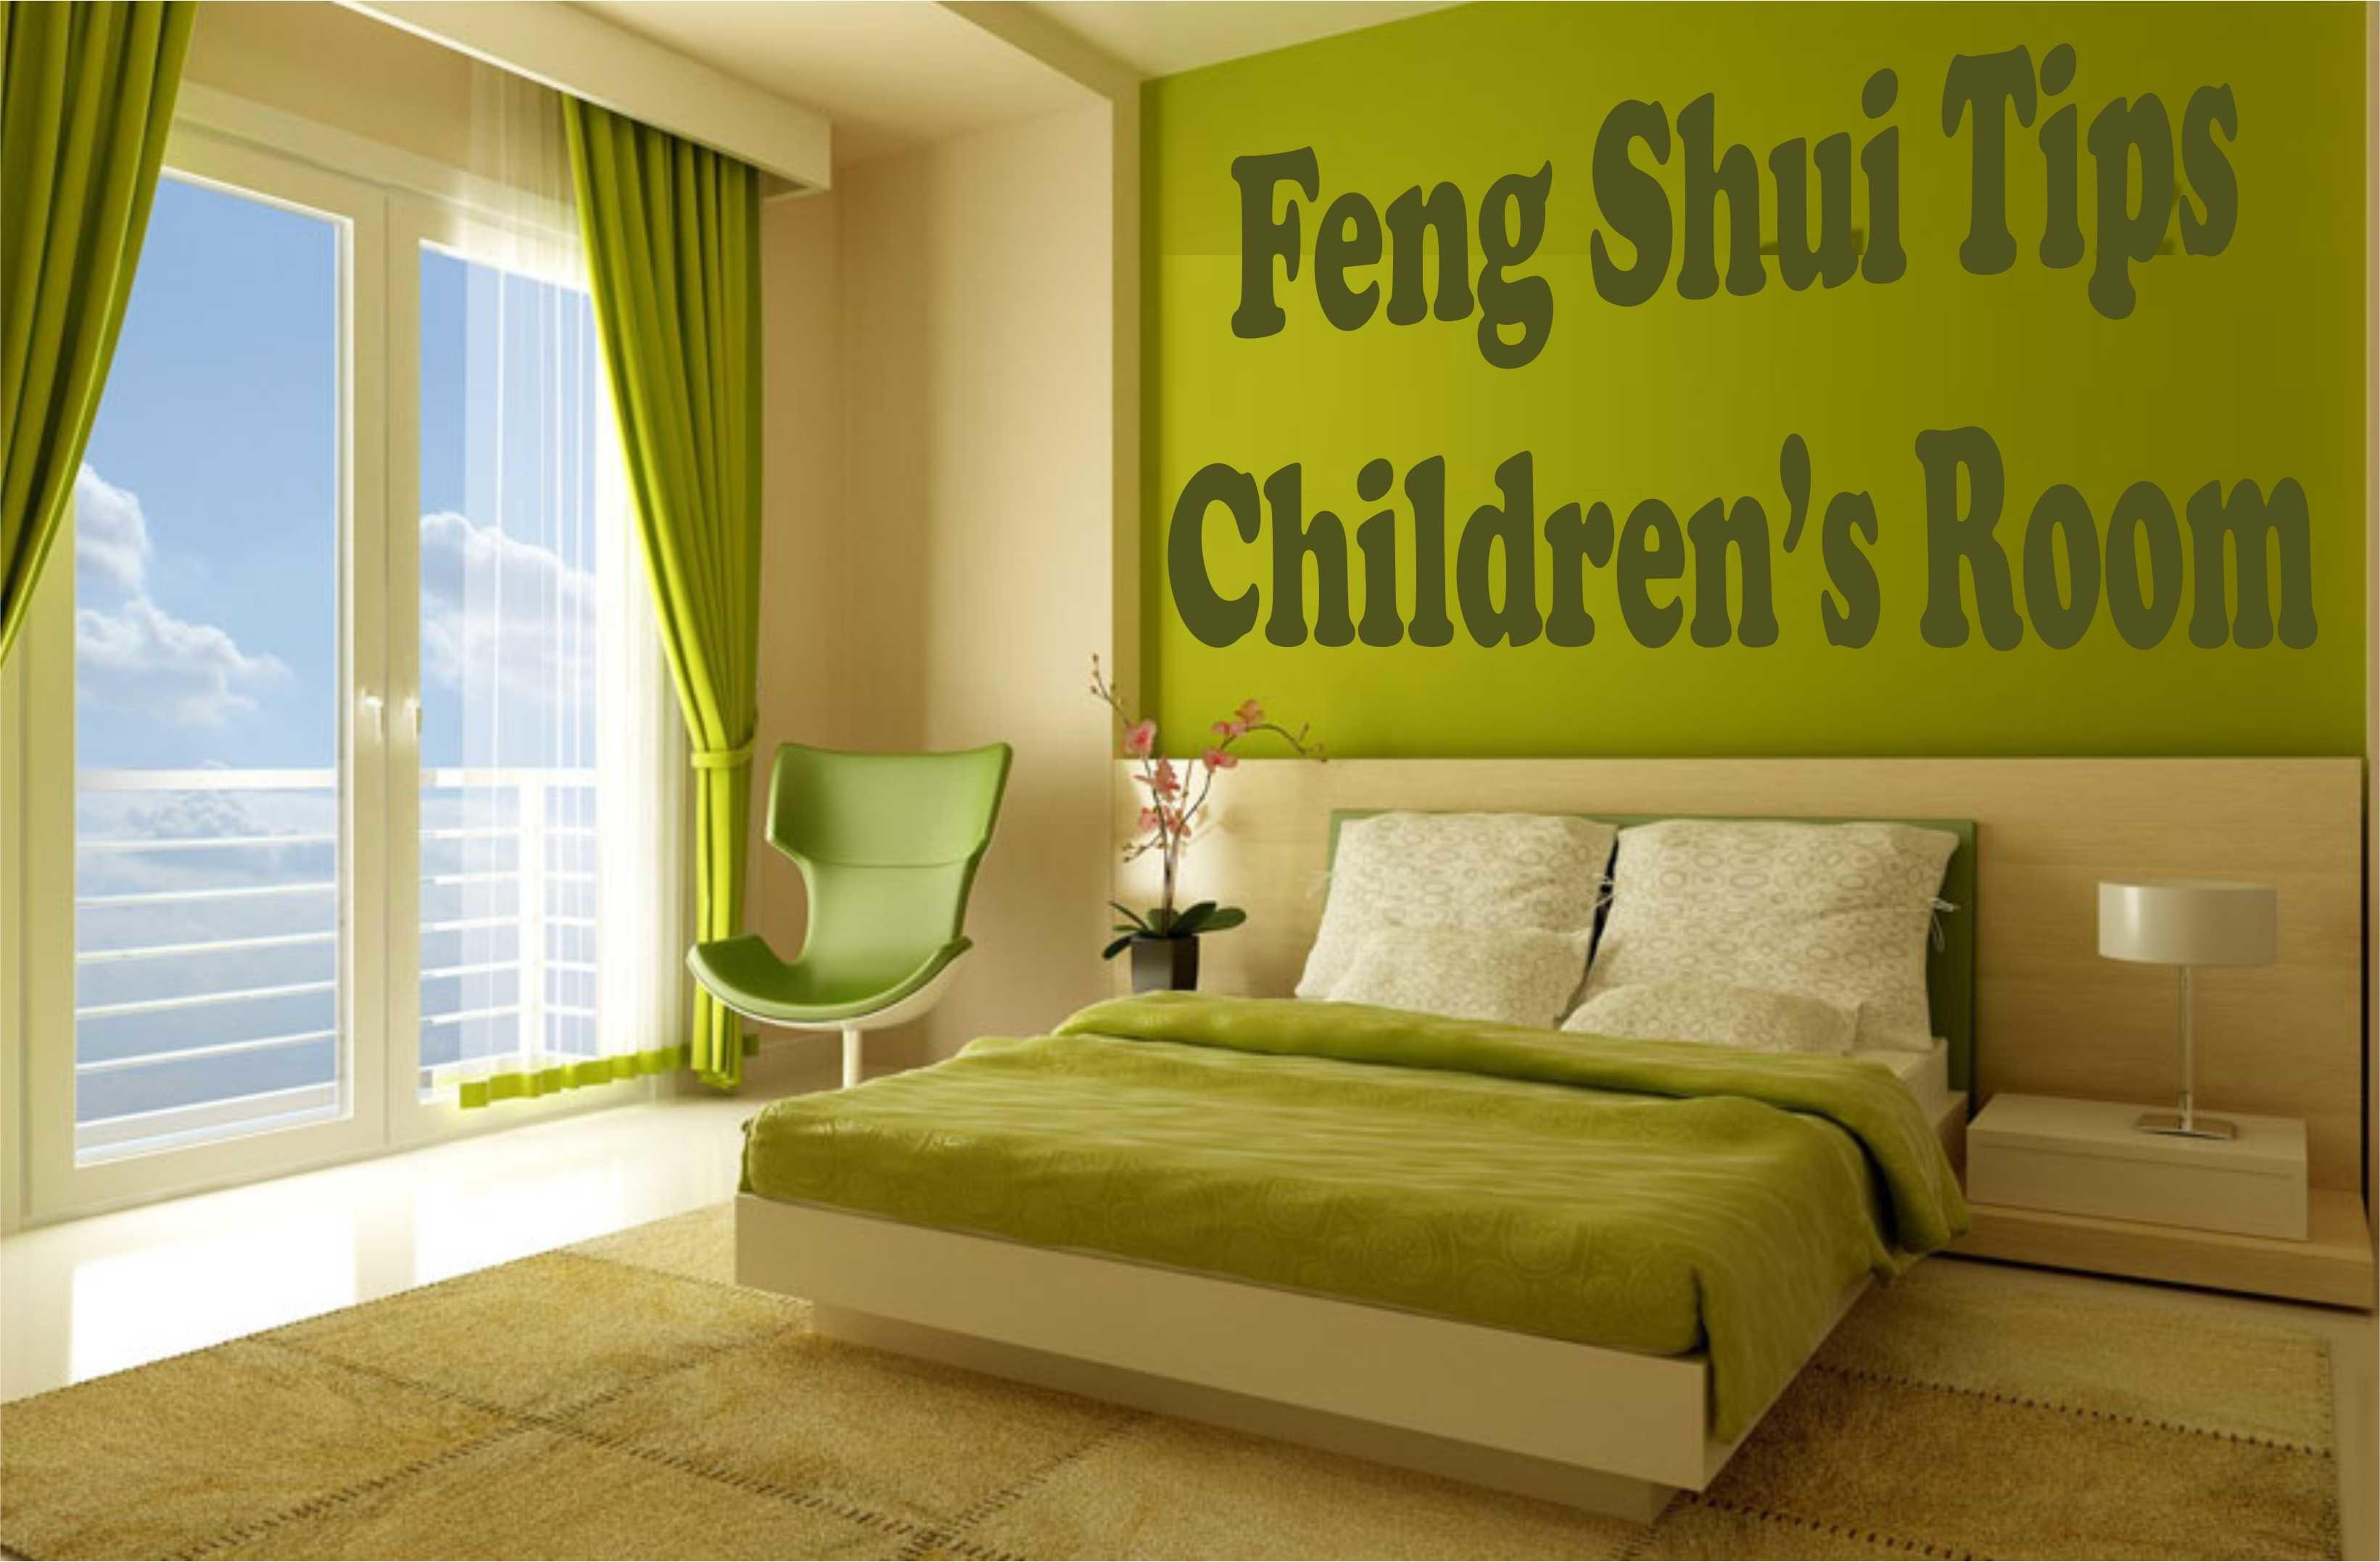 Awesome Feng Shui Kids Bedroom Design Decoration